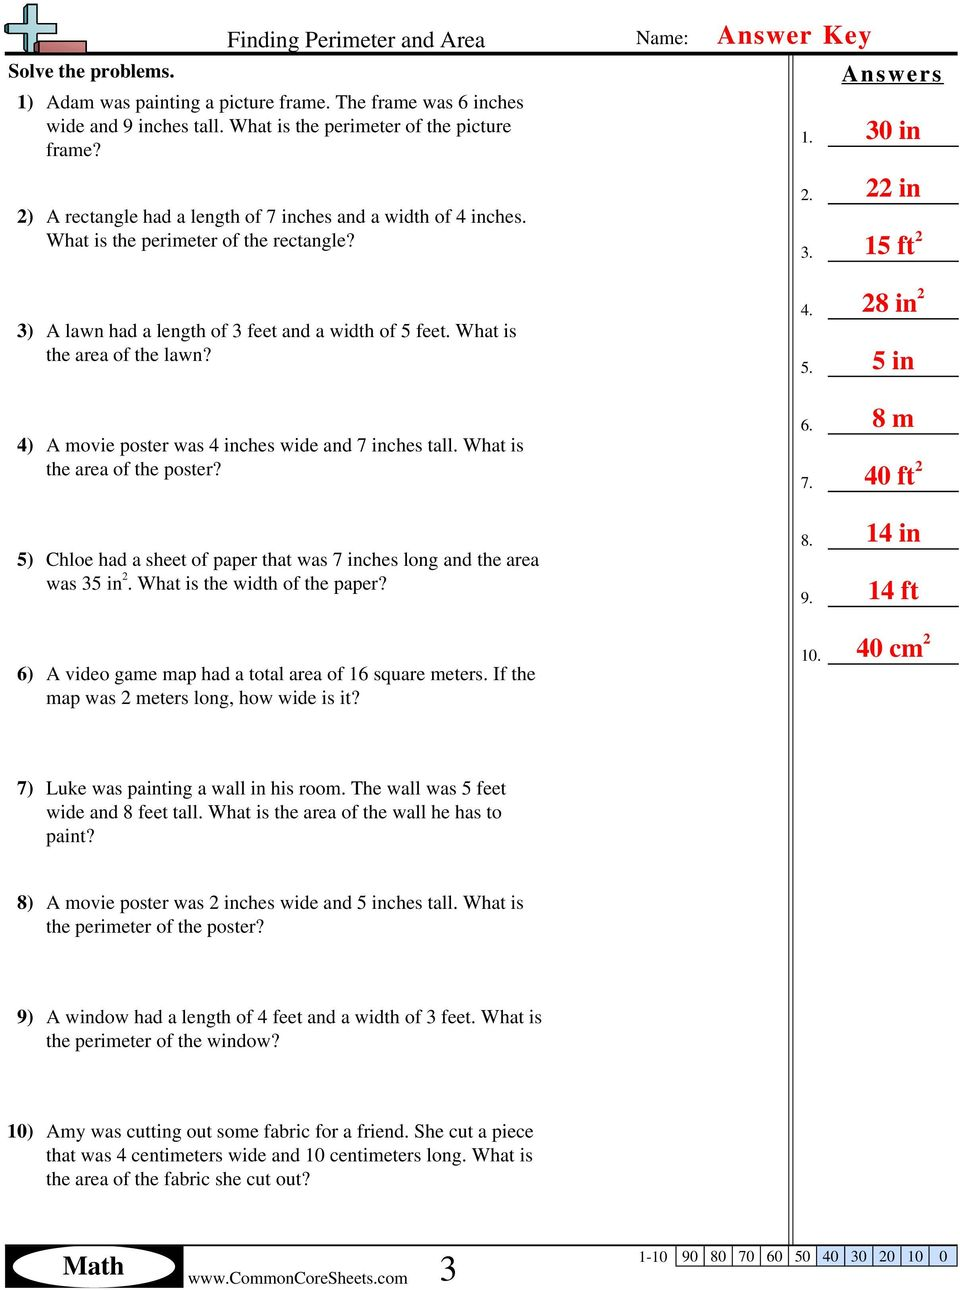 5 5 In Meters Math Finding Perimeter And Area Answers Name Solve The